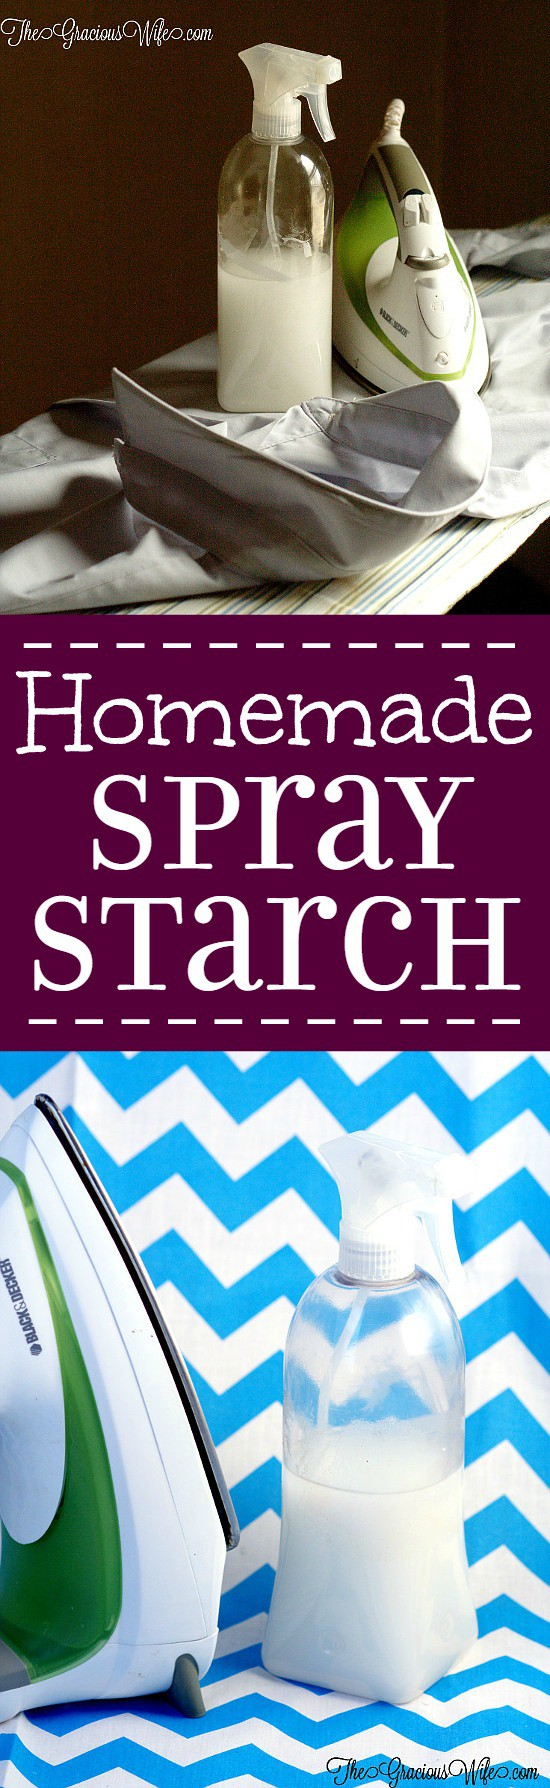 Homemade Ironing Starch - Did you know you can make your own DIY spray starch for ironing? What an amazing life hack!